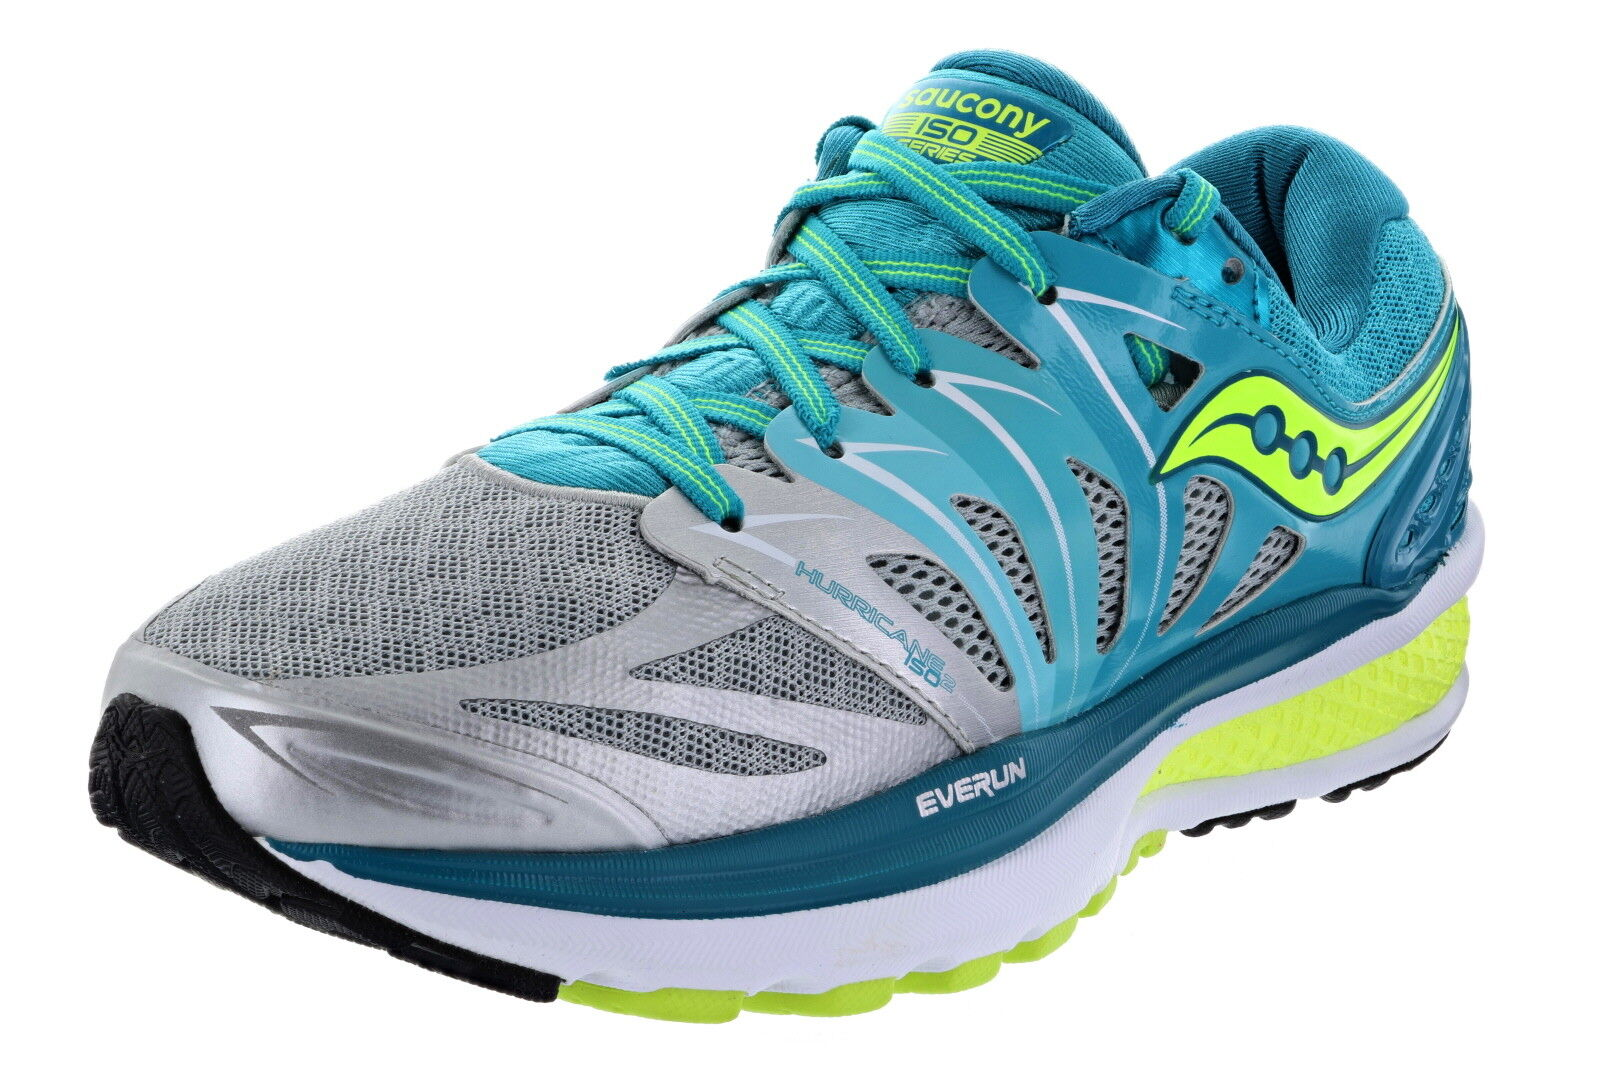 Saucony Hurricane ISO 2 Damenschuhe Medium Width Running Training Schuhes S10293-1